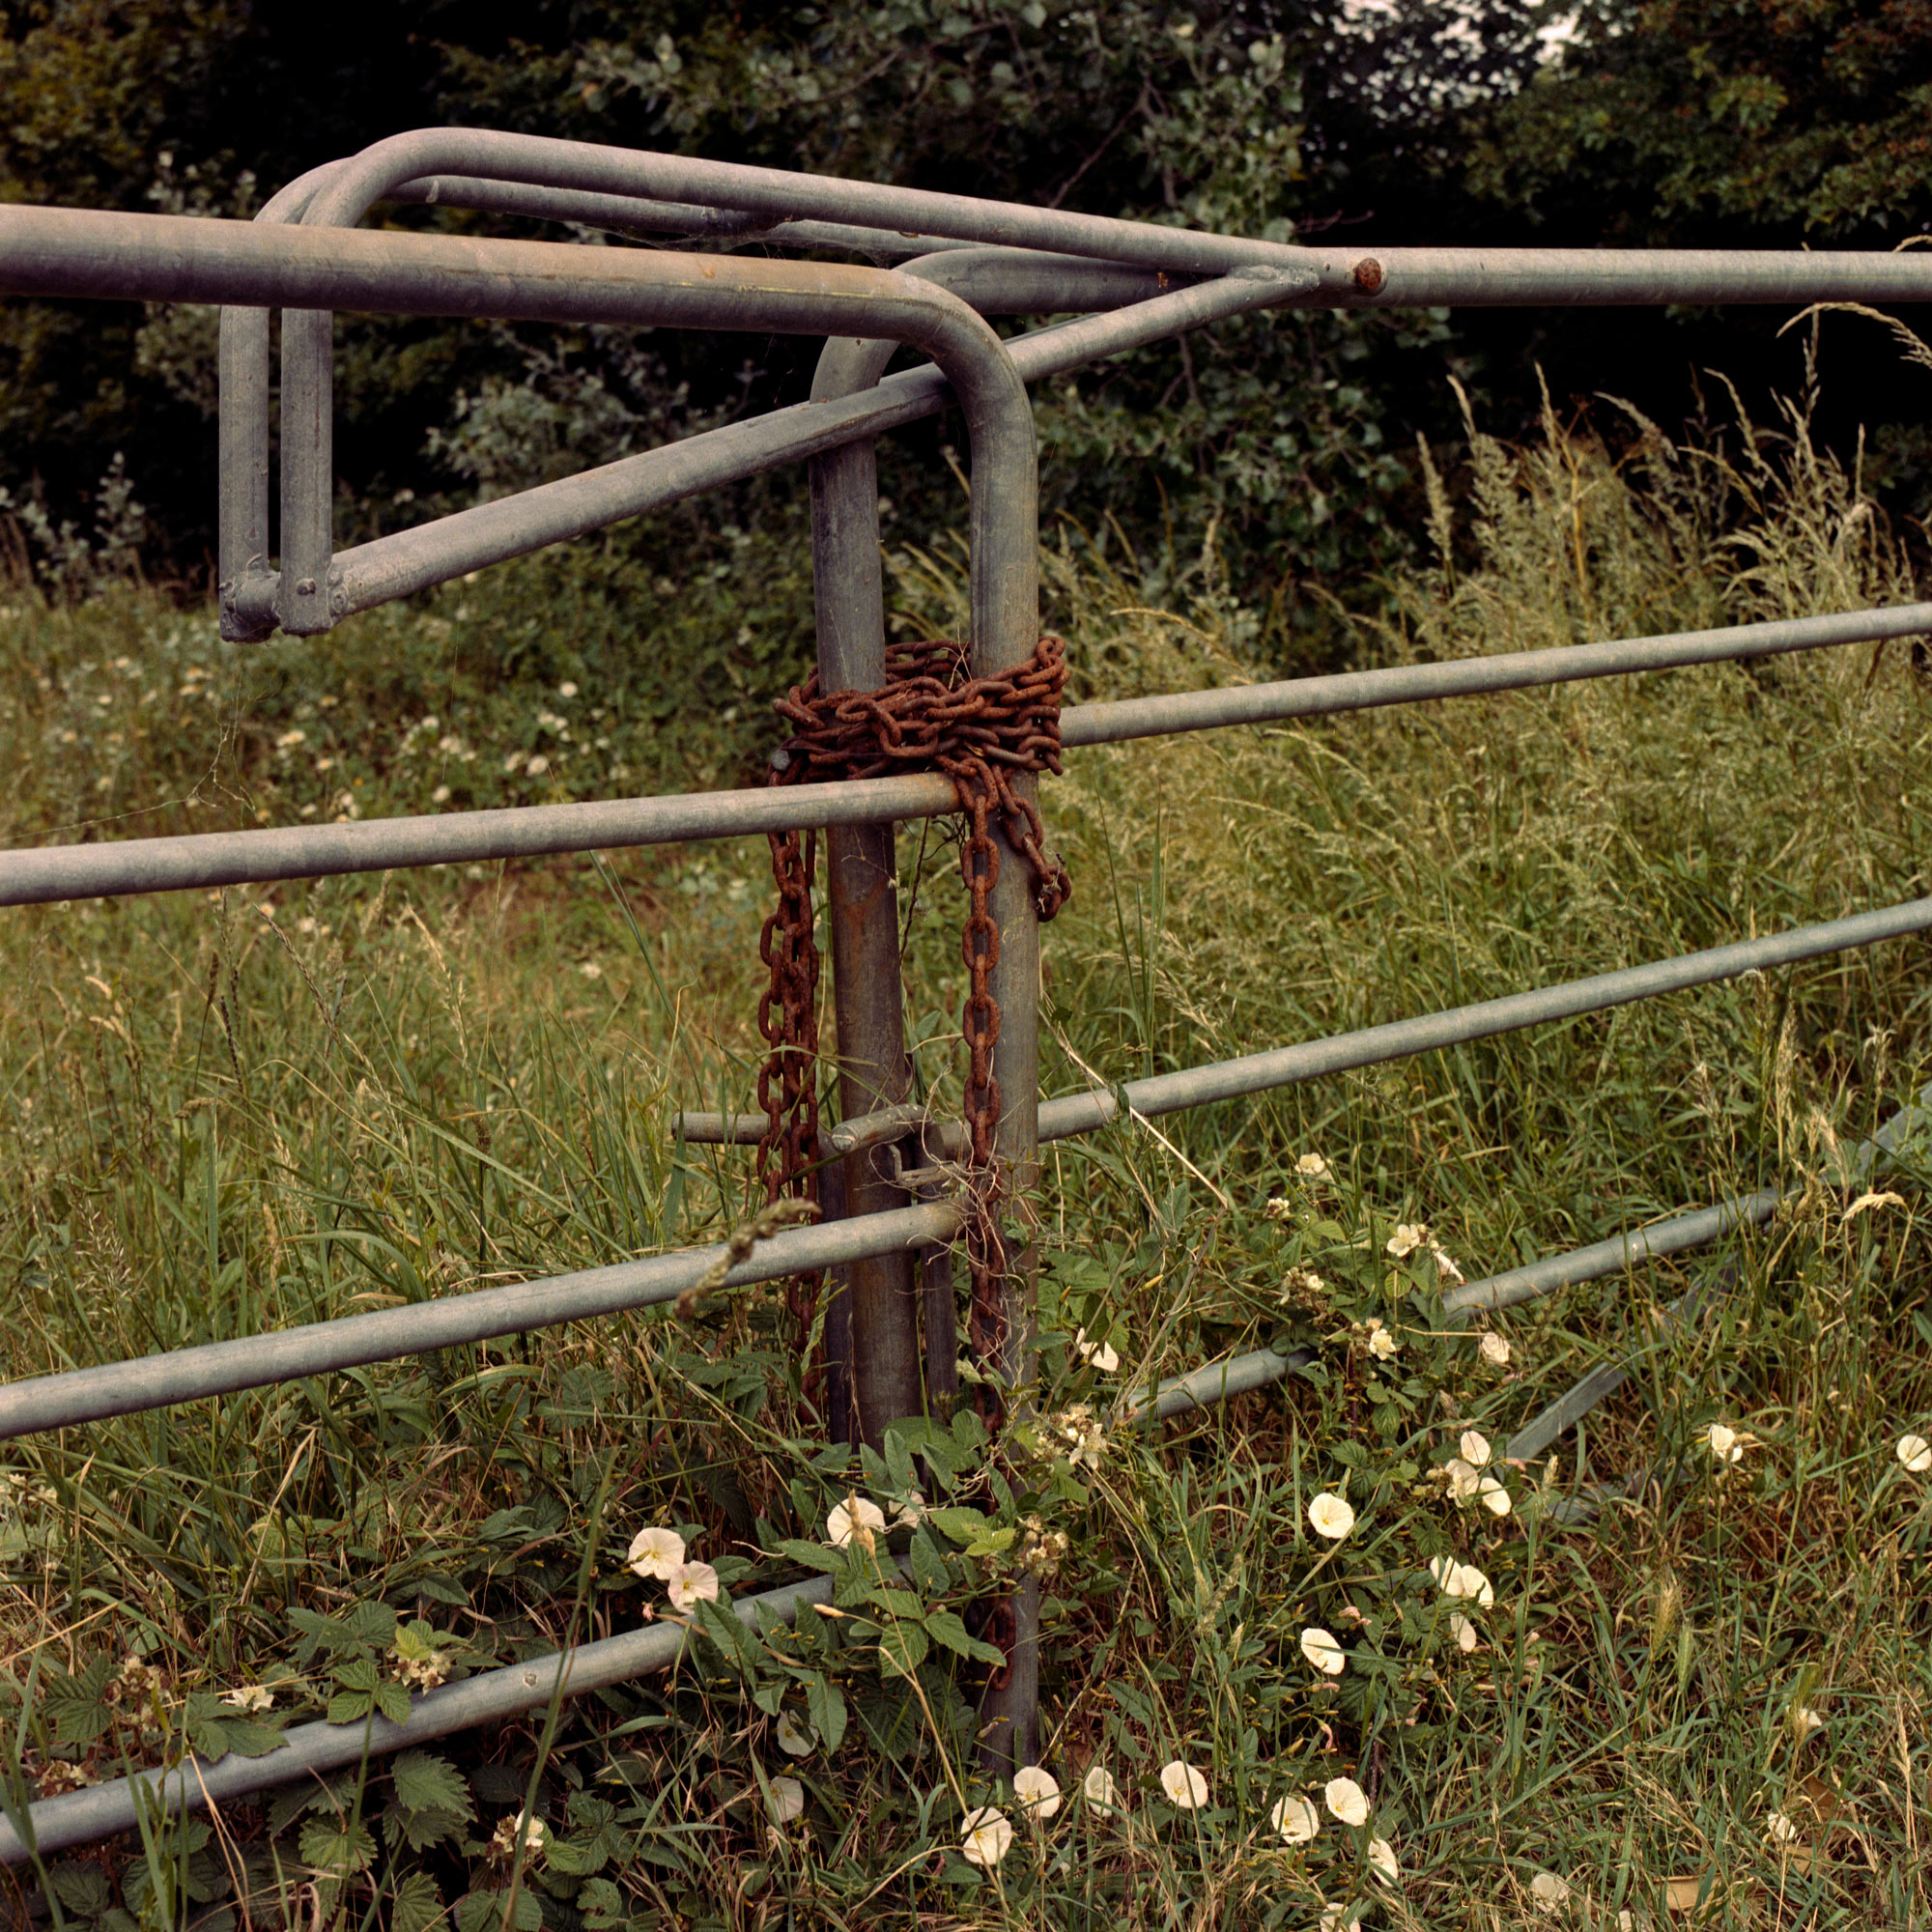 Chained Gate, landscape observation on film by ioannis Koussertari.